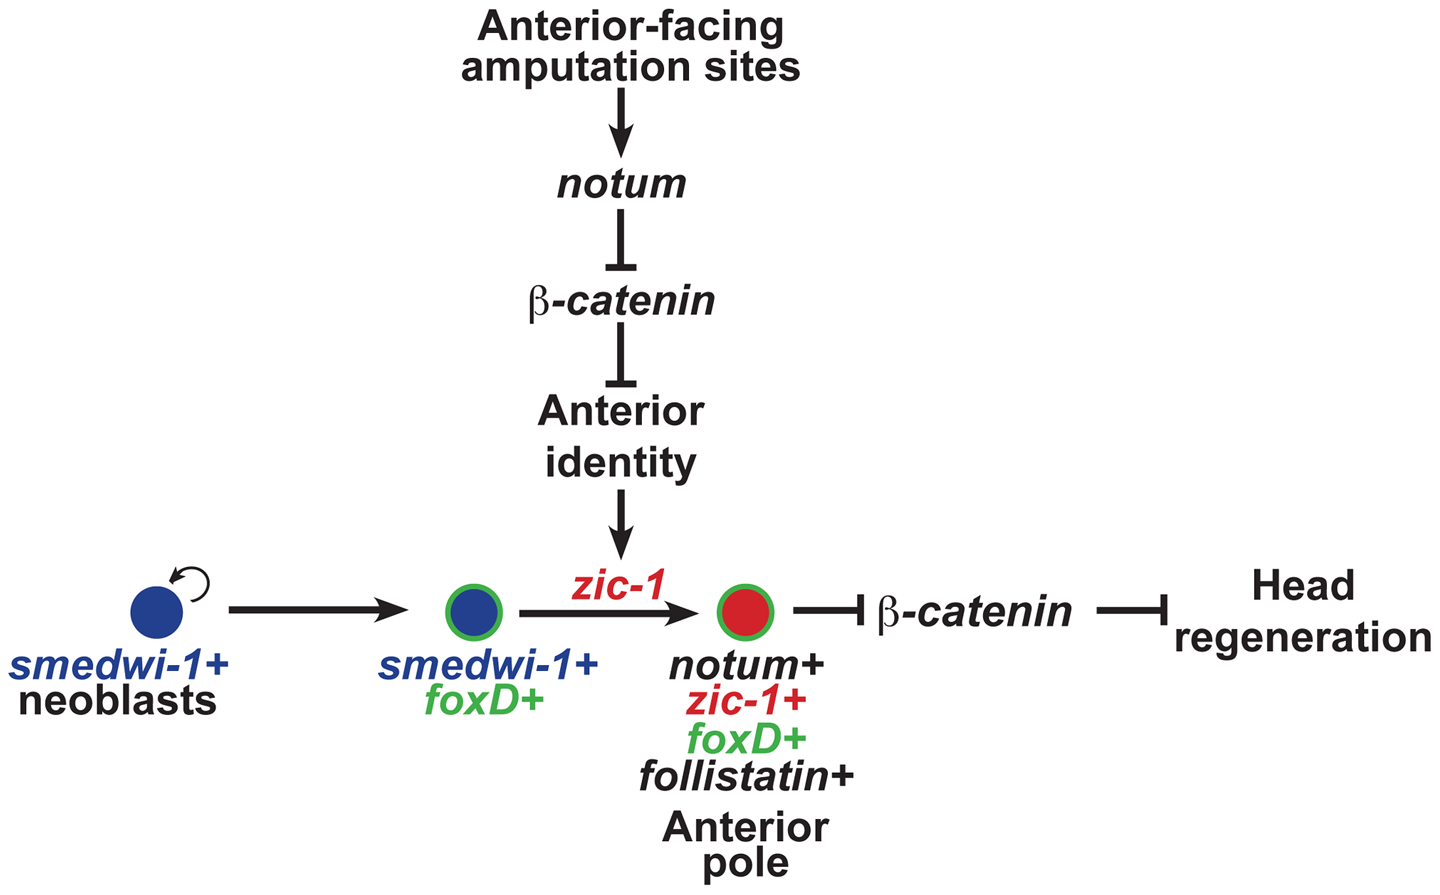 <i>zic-1</i> function couples injury signaling and polarized Wnt signaling cues for activation of stem cells to produce the anterior pole in early head regeneration.